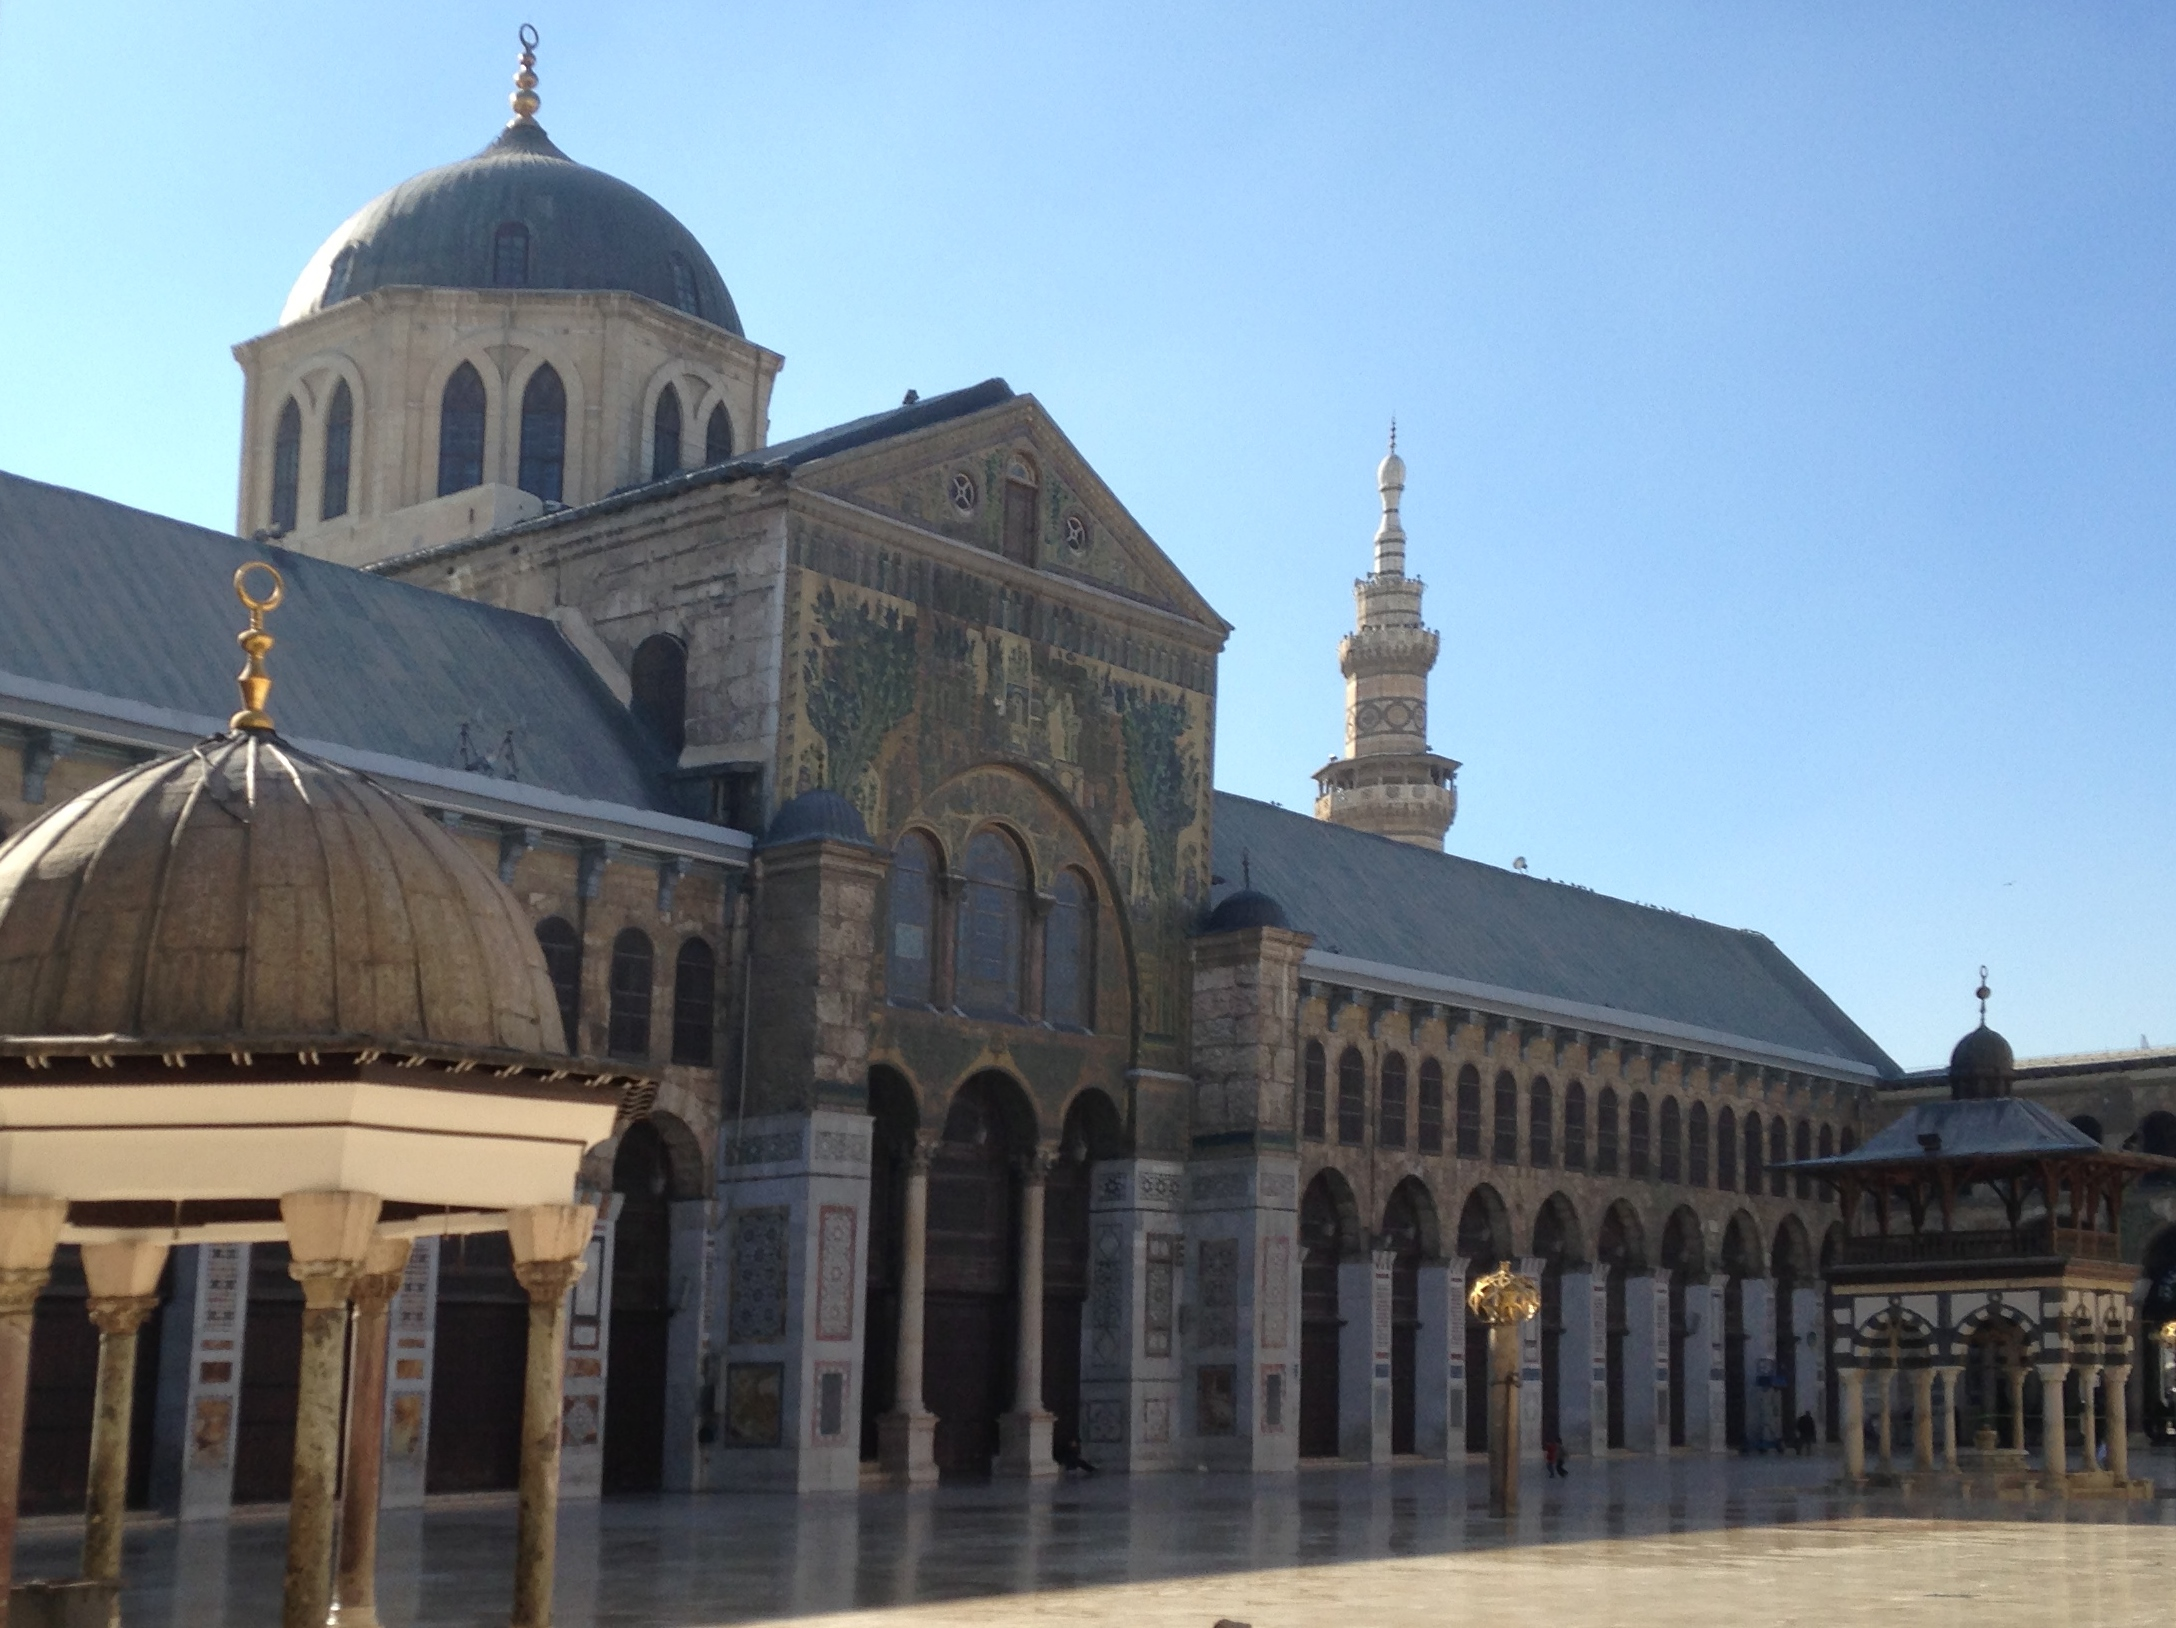 the great mosque od domascus The great ummayyad mosque remains one of the great symbols of the glorious period of muslim civilisation and its pride it is a master piece of architectural ingenuity having a decisive influence on the maturity of mosque architecture all over the muslim world.